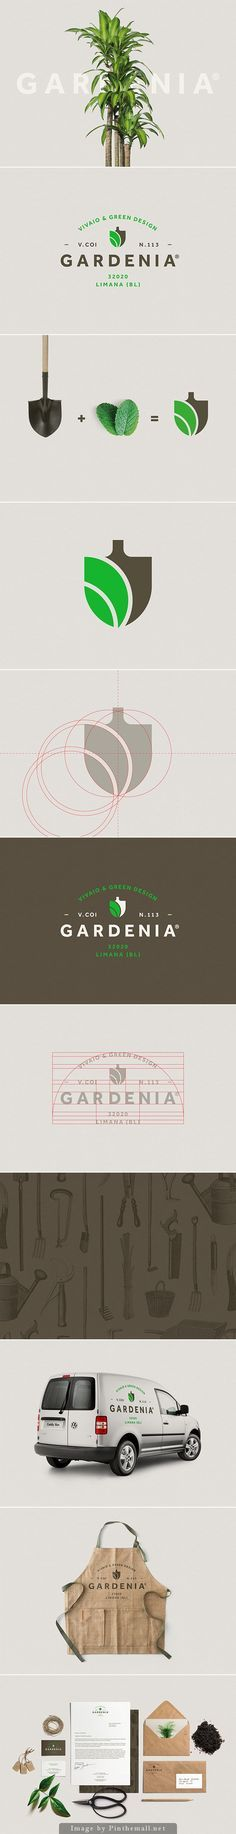 Gardenia identity... - a grouped images picture